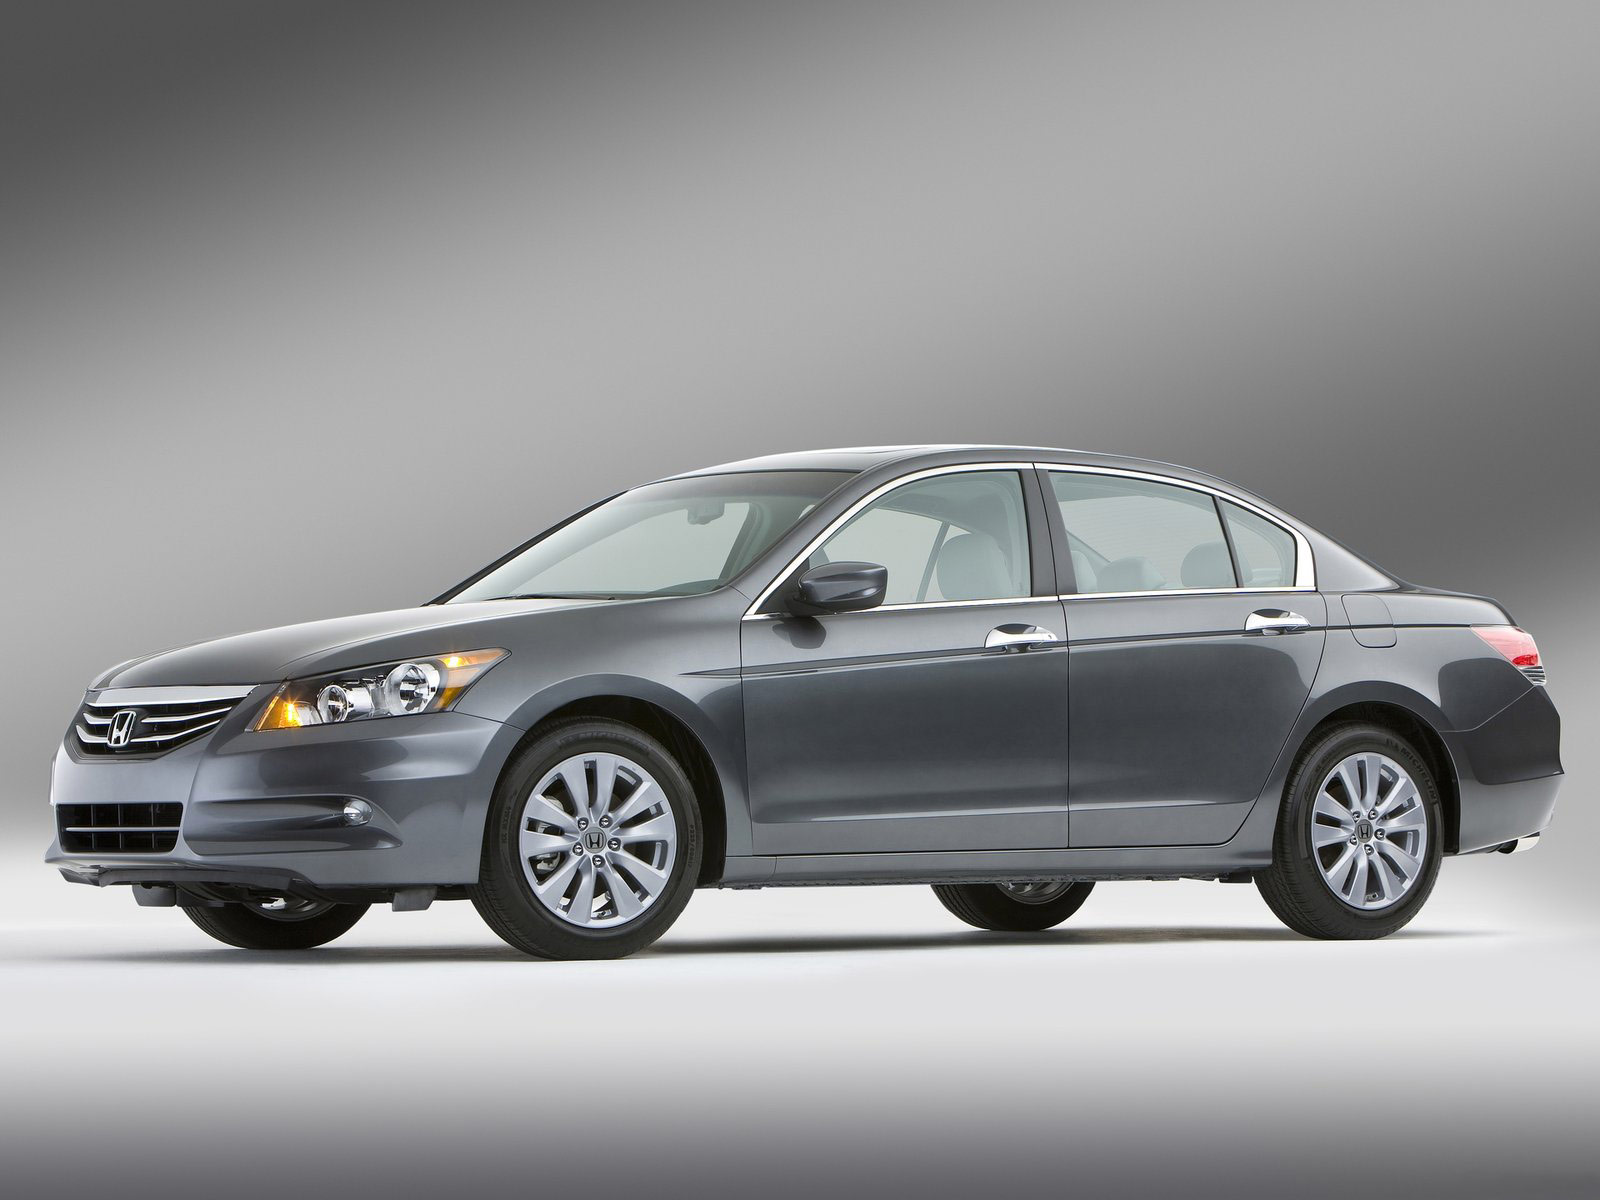 2010 Honda Accord For Sale >> 2011 HONDA Accord Japanese car photos, accident lawyers info